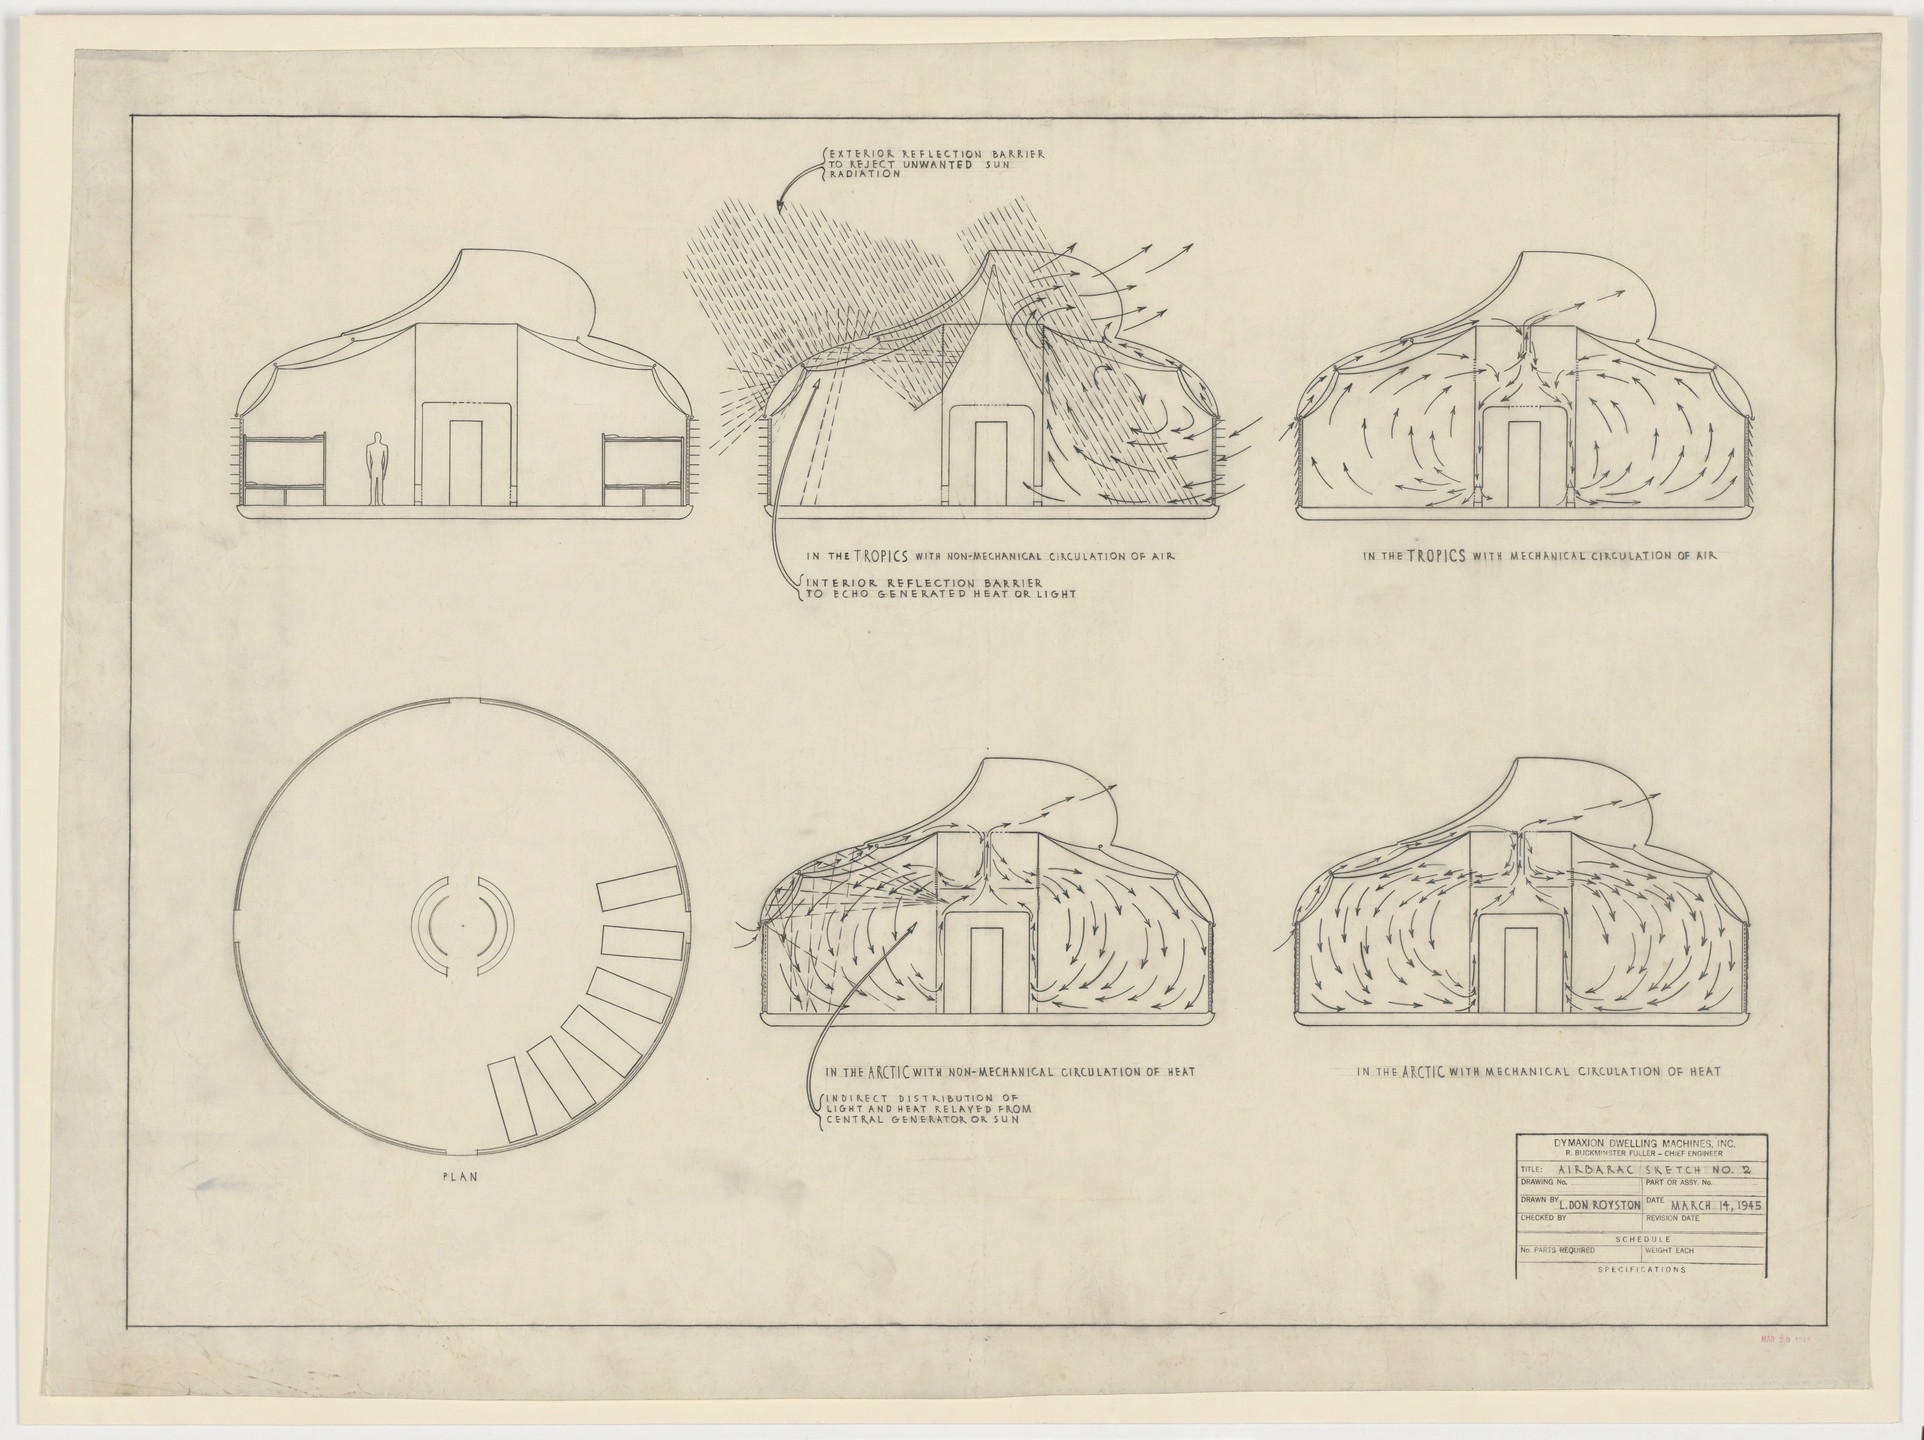 R. Buckminster Fuller. Dymaxion Dwelling Machine project, Wichita House (Study for air circulation: plan and sections). 1945